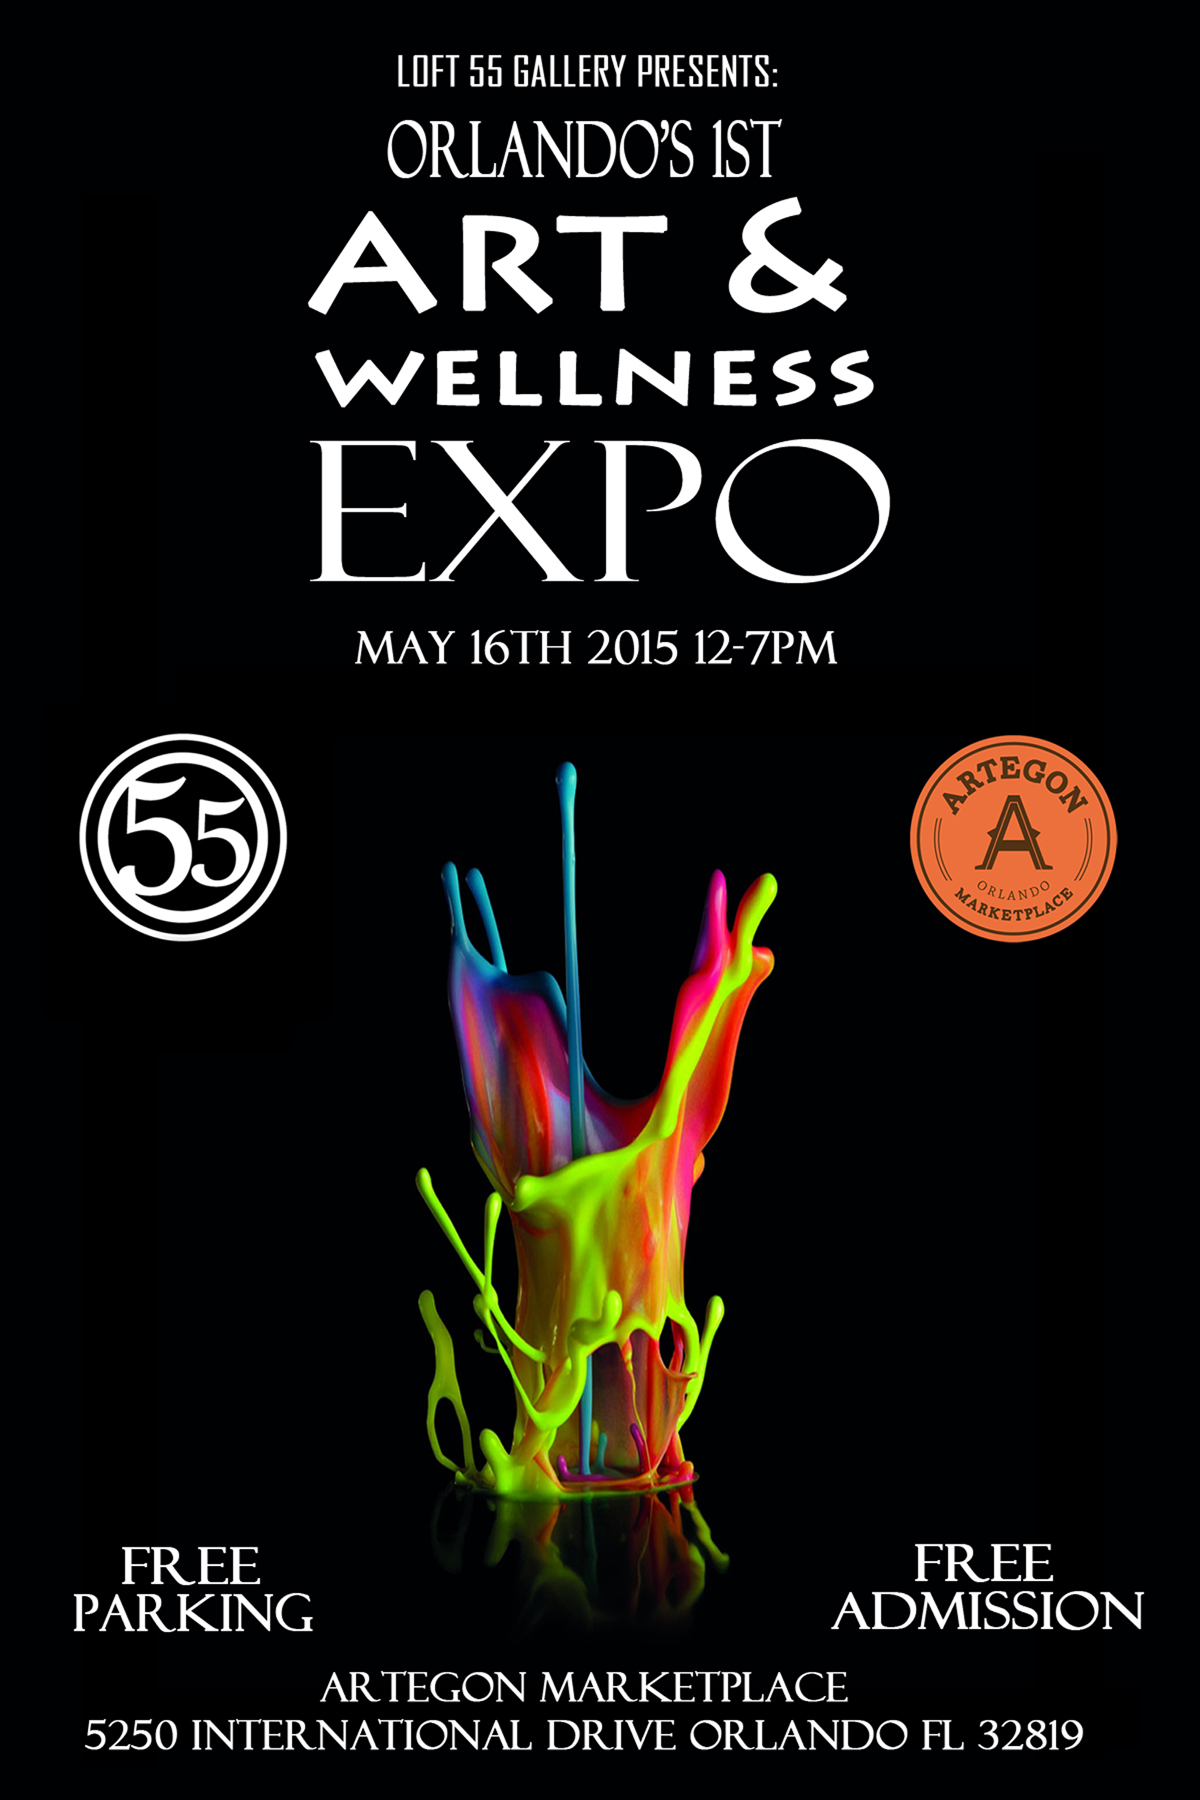 Artegon Marketplace Art & Wellness Expo 2015